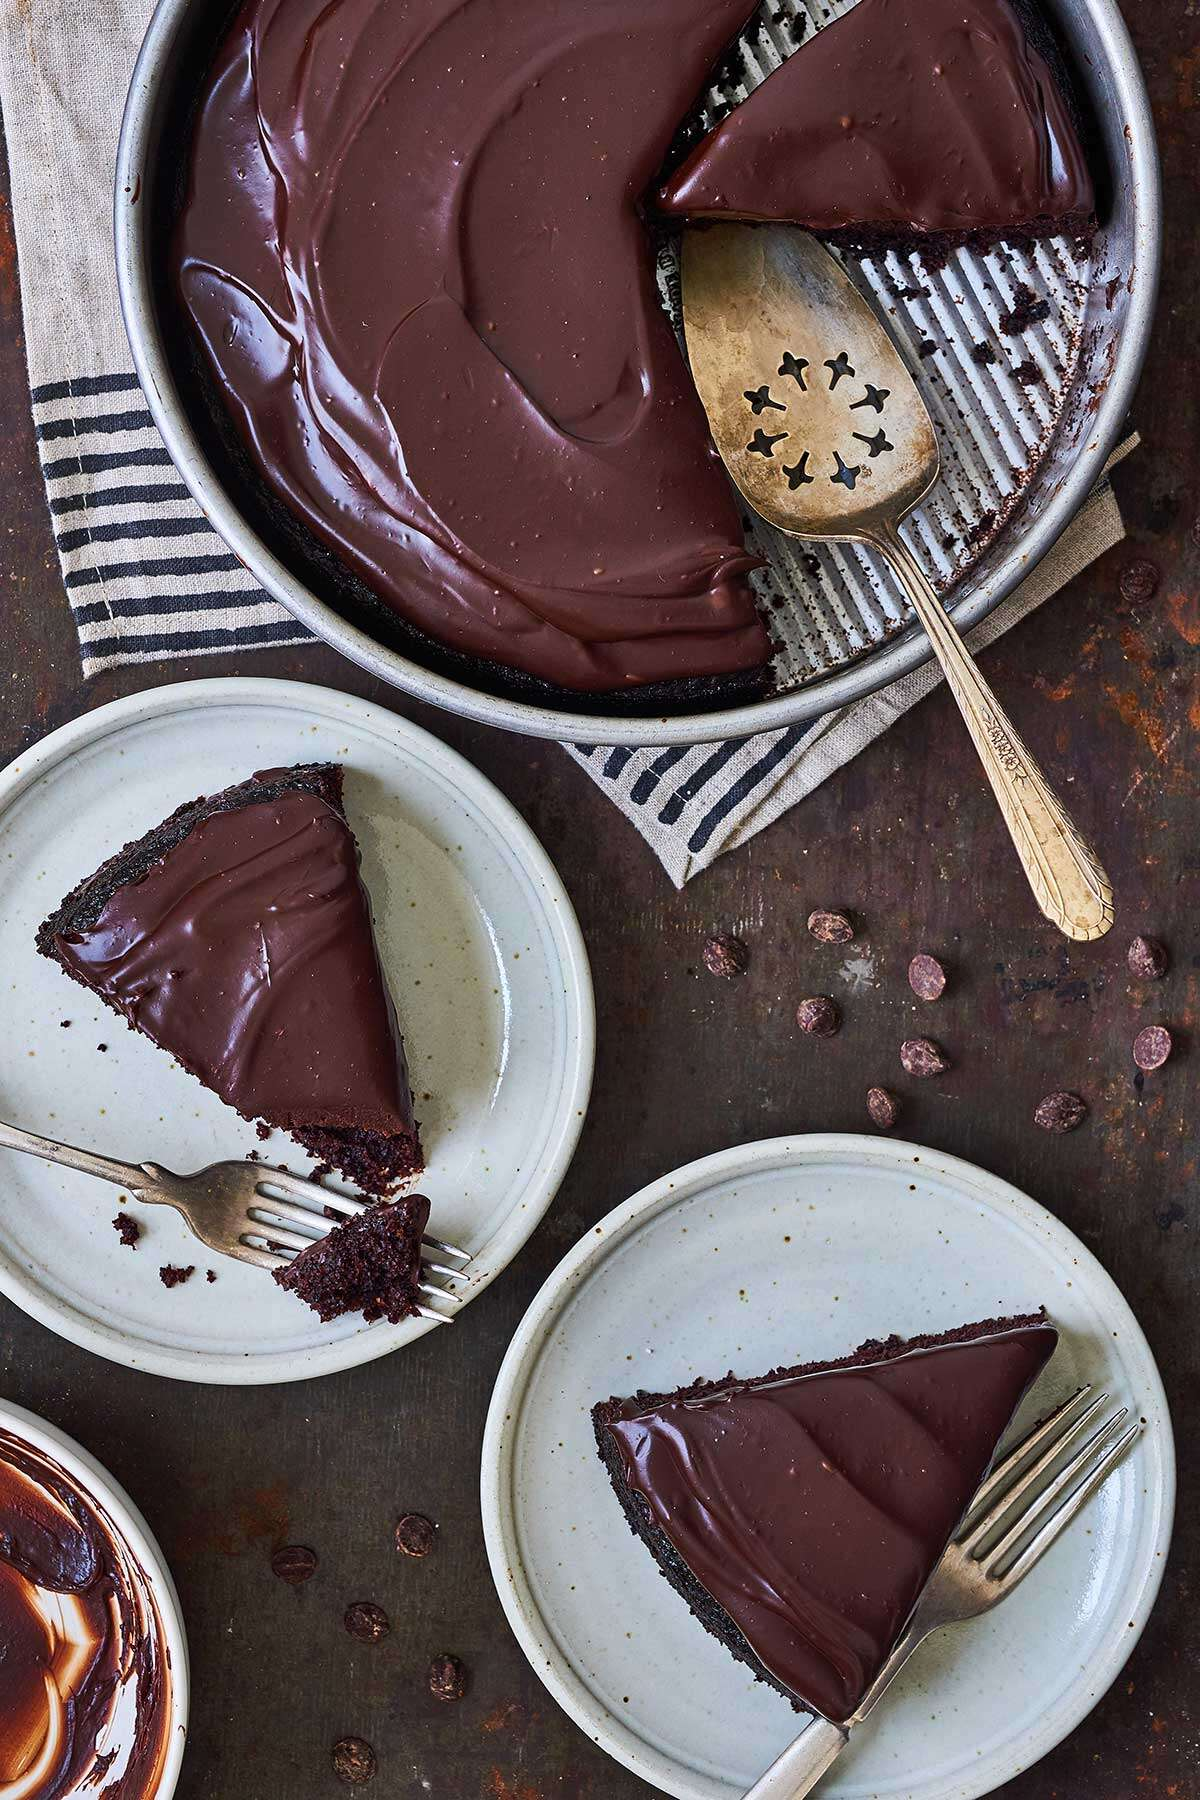 A round chocolate cake topped with chocolate frosting and a few slices on plates